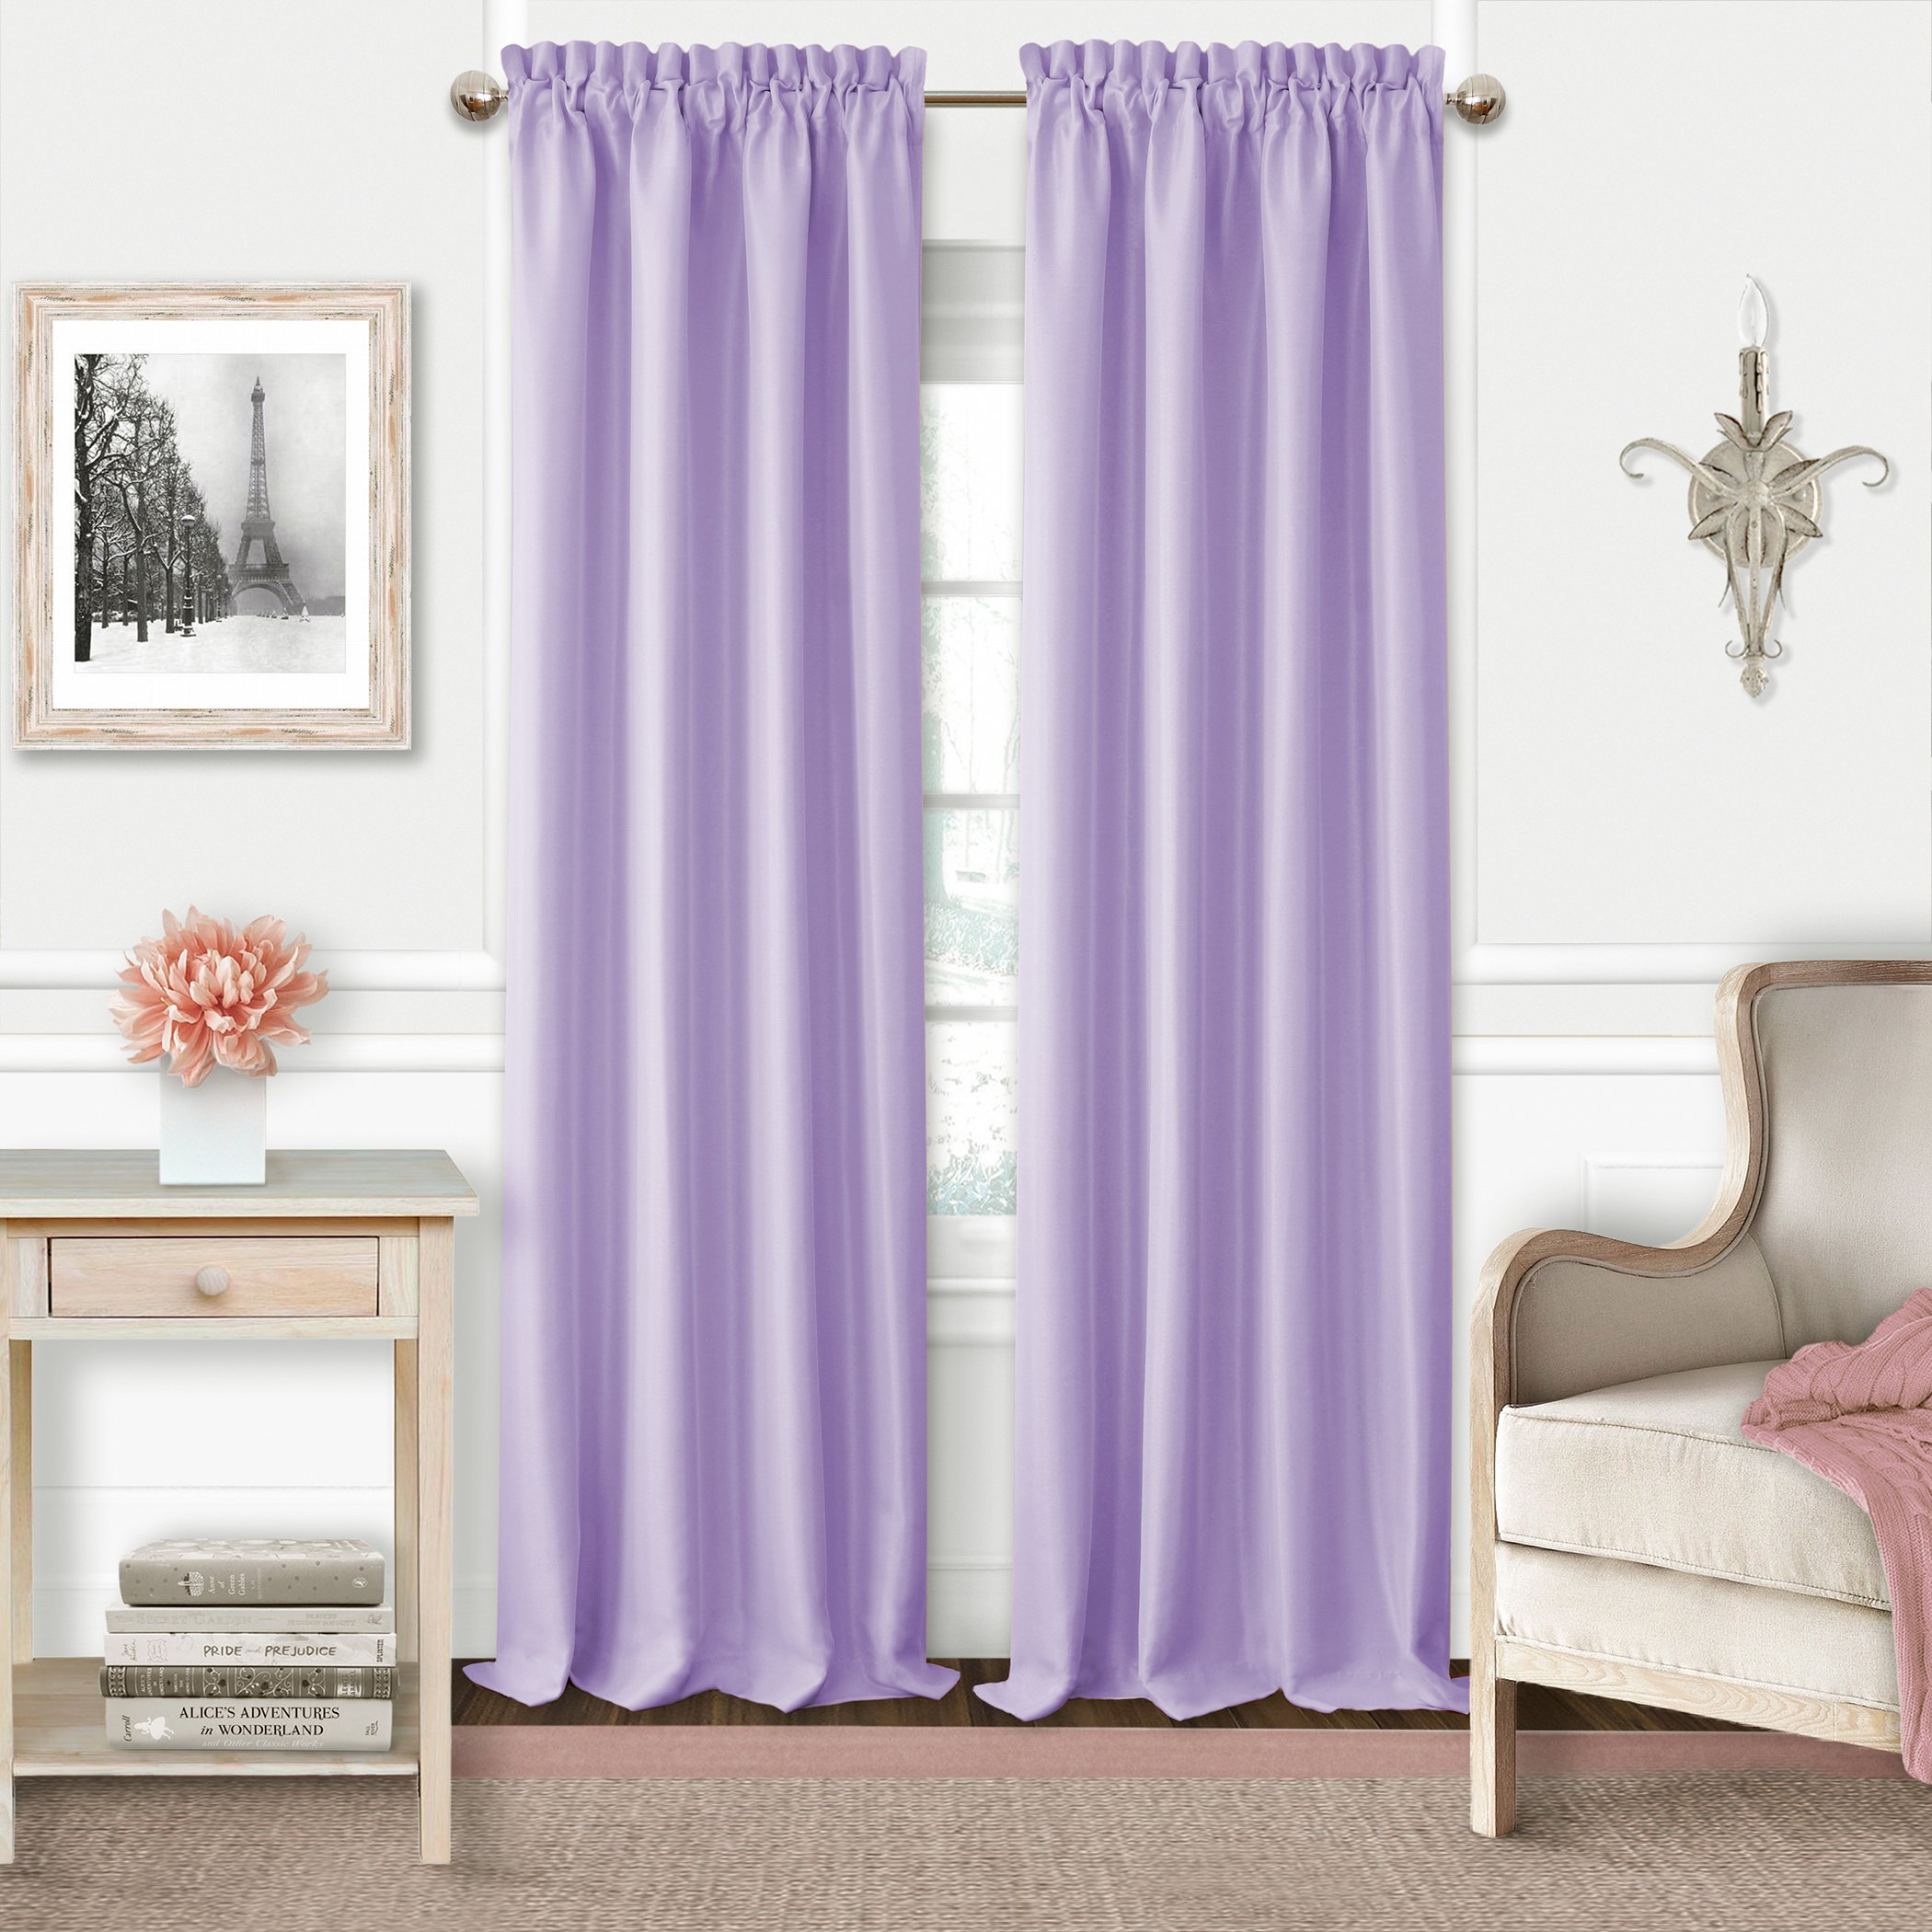 Elrene Adaline Kids Pastel Faux Silk Solid Color Blackout Room Darkening Thermal Insulating Window Curtain/Single Rod Pocket Panel by, 52 Inch Wide X 84 Inch Long, Lavender